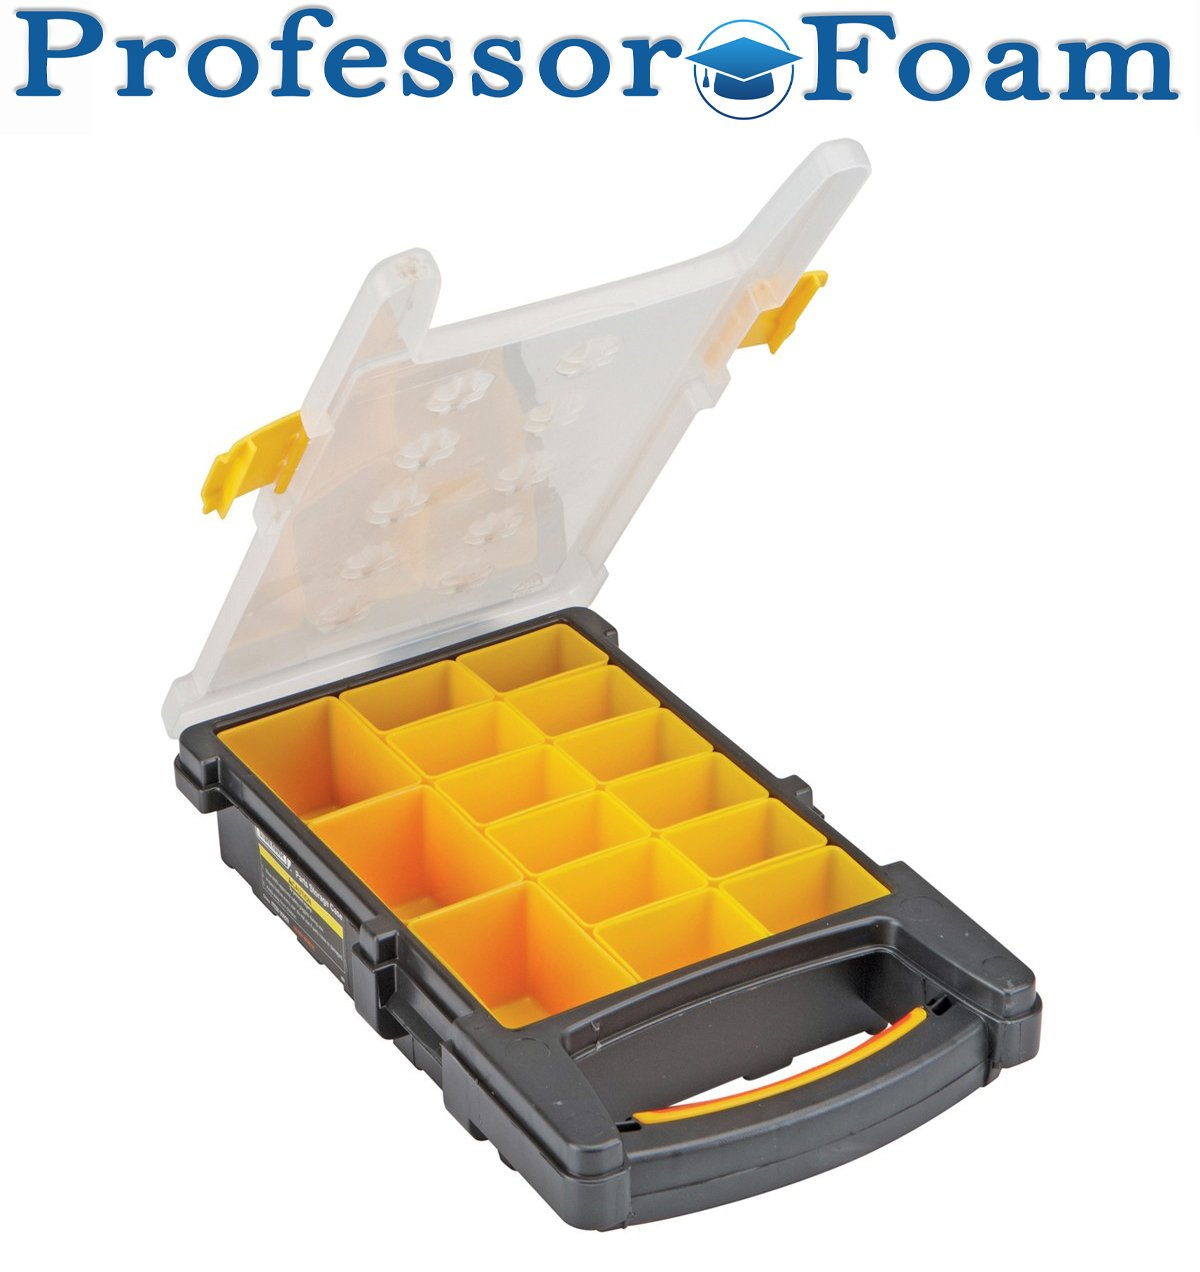 5 Pack fits Graco Fusion Air Purge Replacement Kit 246355 = OEM from Professor Foam